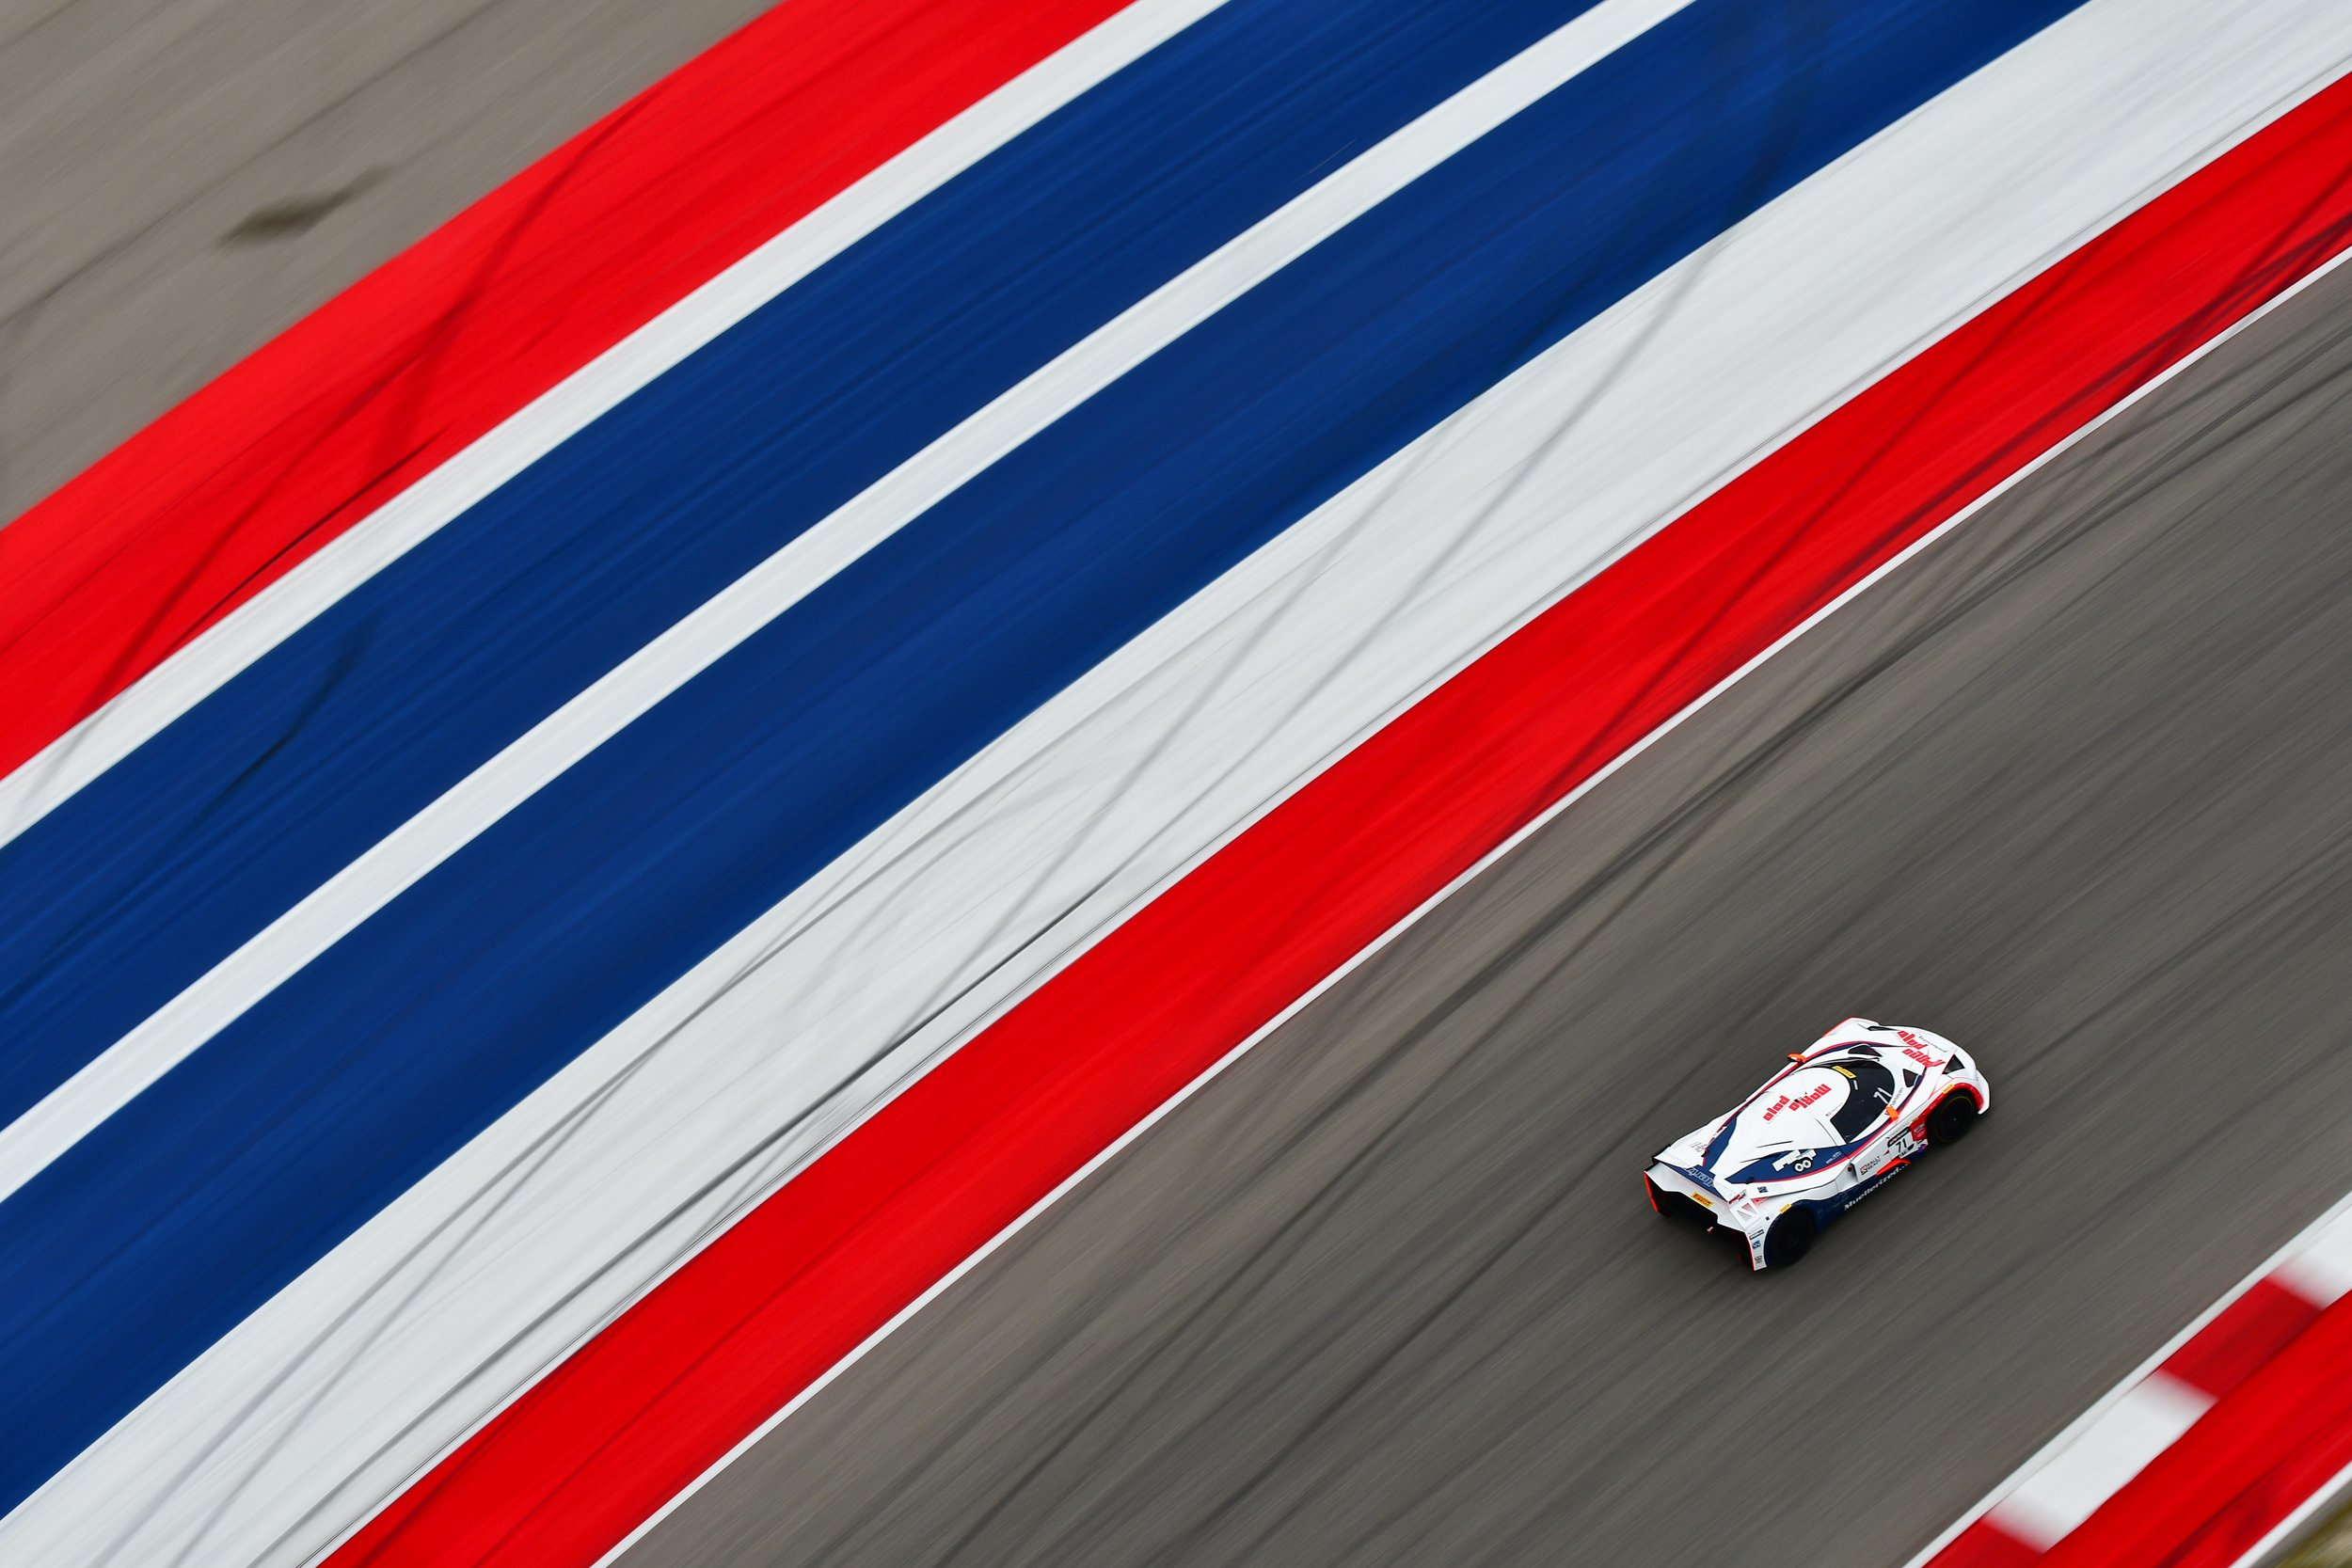 Grand Prix of Circuit of the Americas